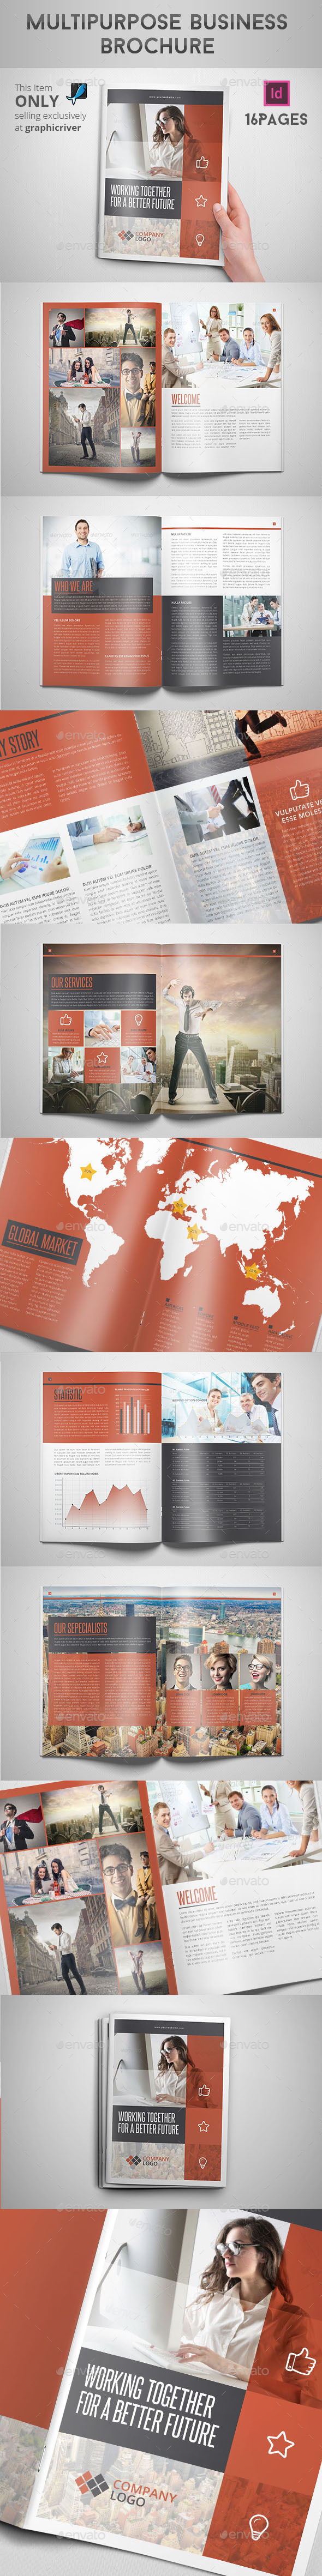 GraphicRiver Multipurpose Business Brochure 9458203